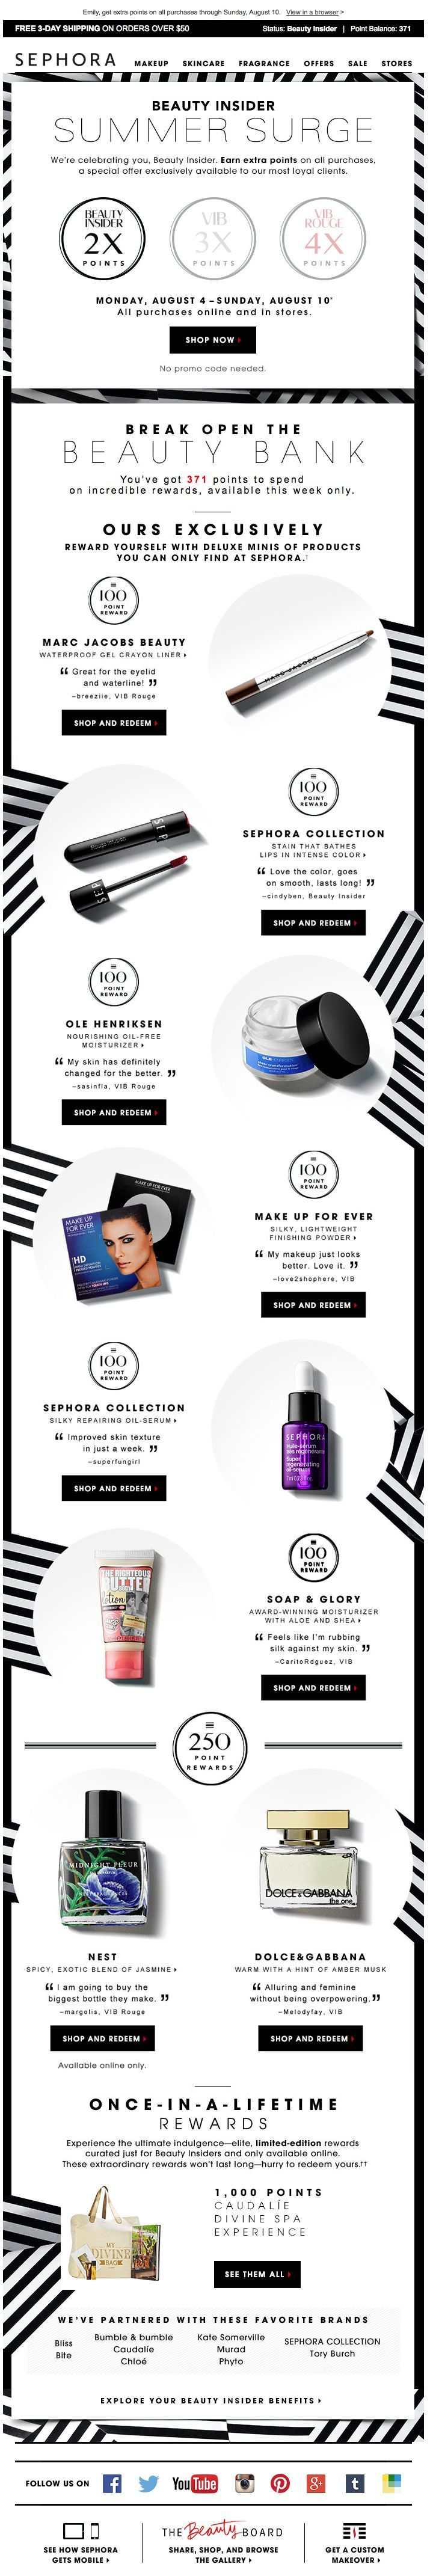 Sephora Insiders, loyalty email. Listed out my insider points: